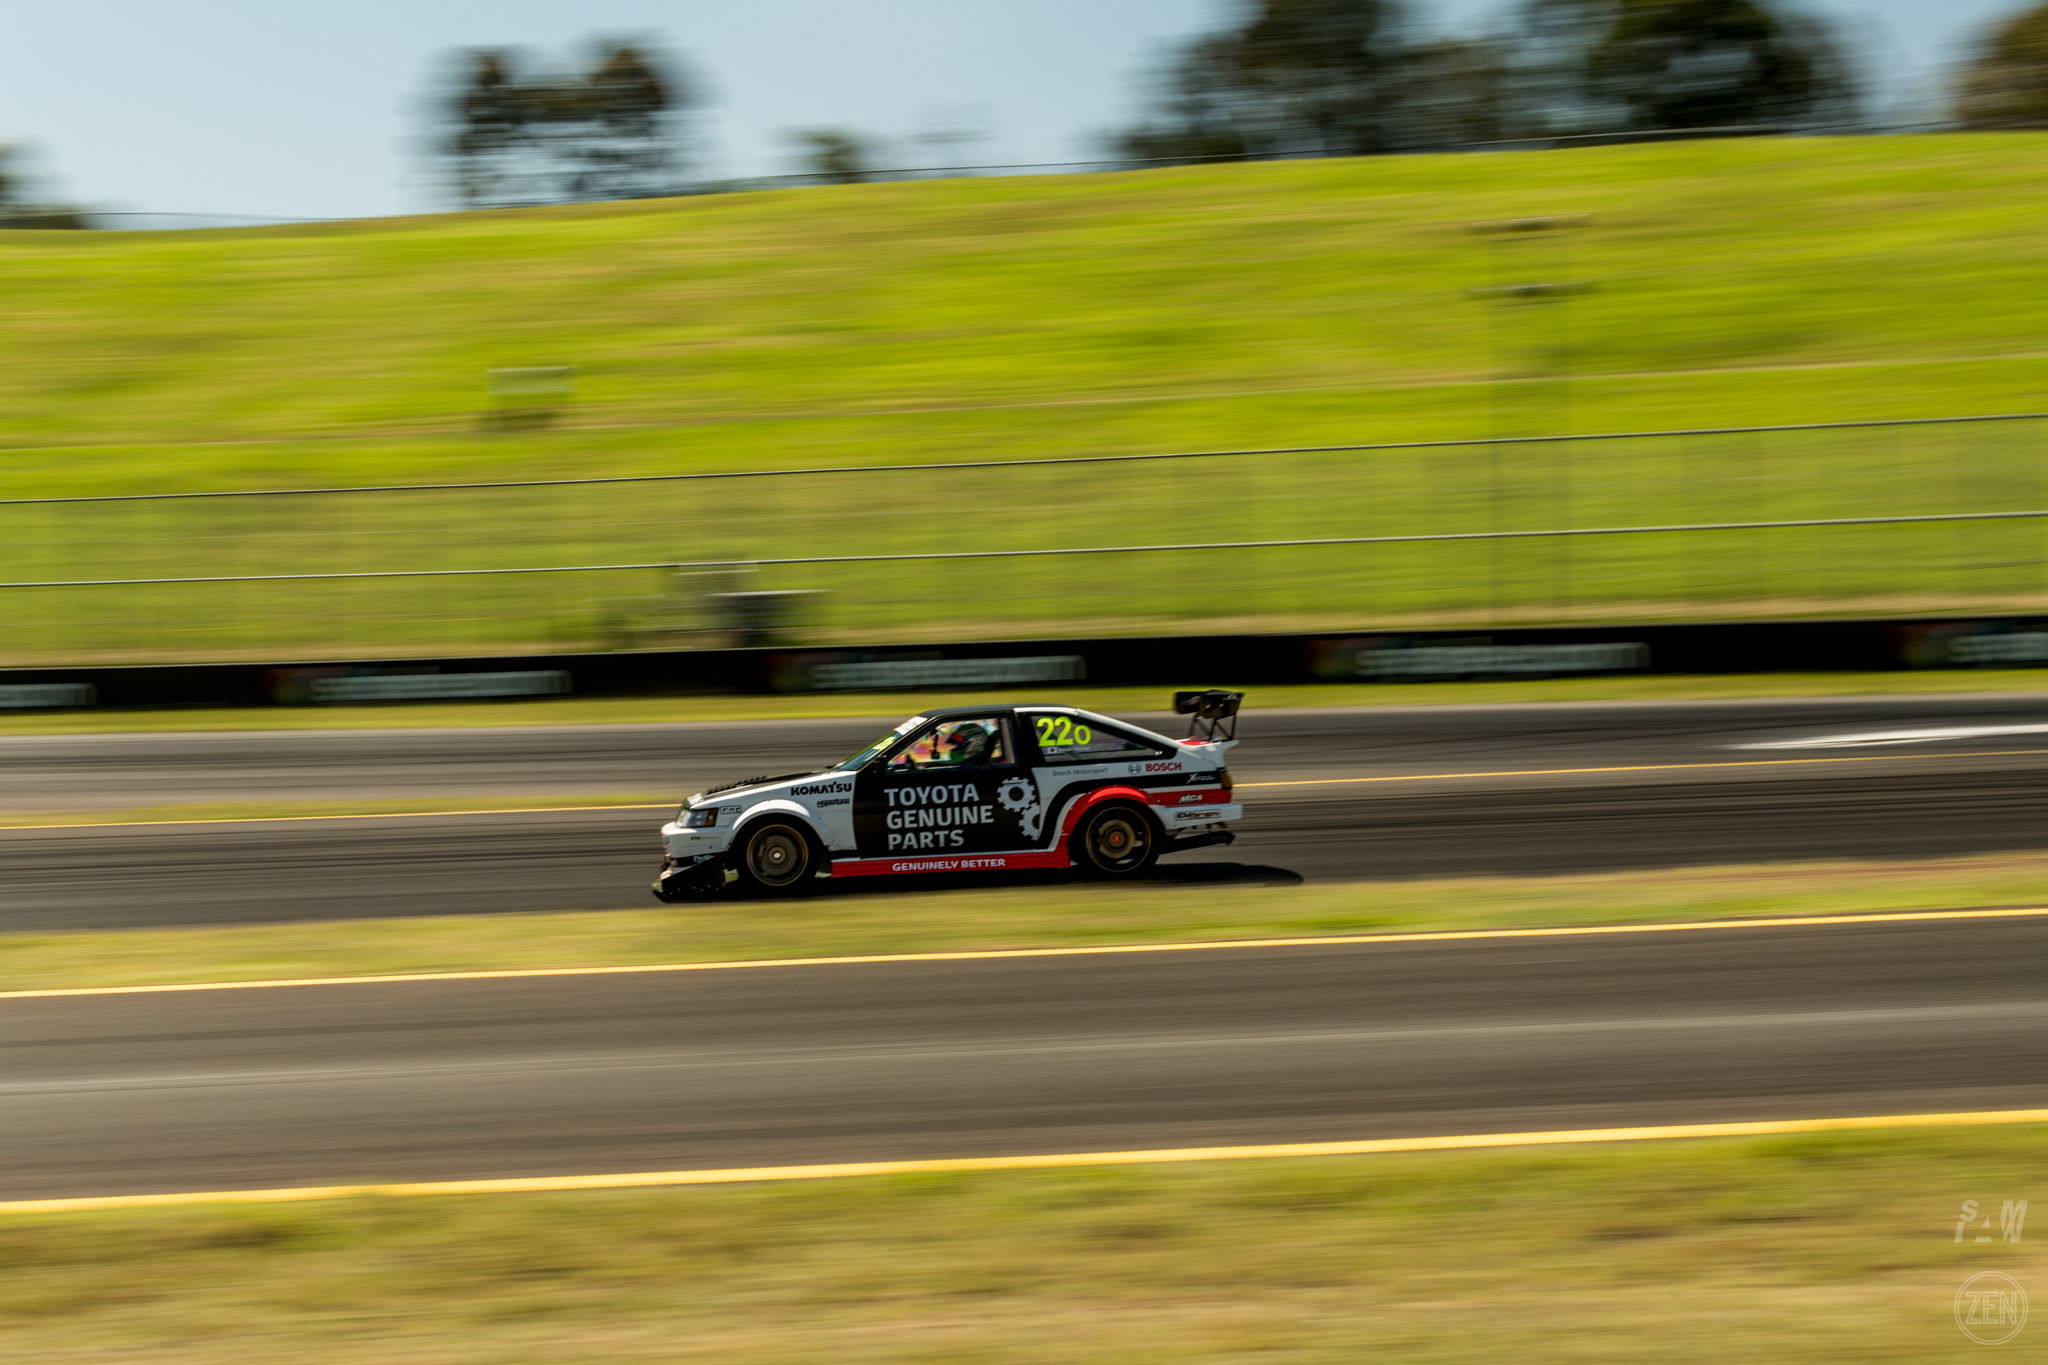 2019-10-18 - WTAC Day 01 049